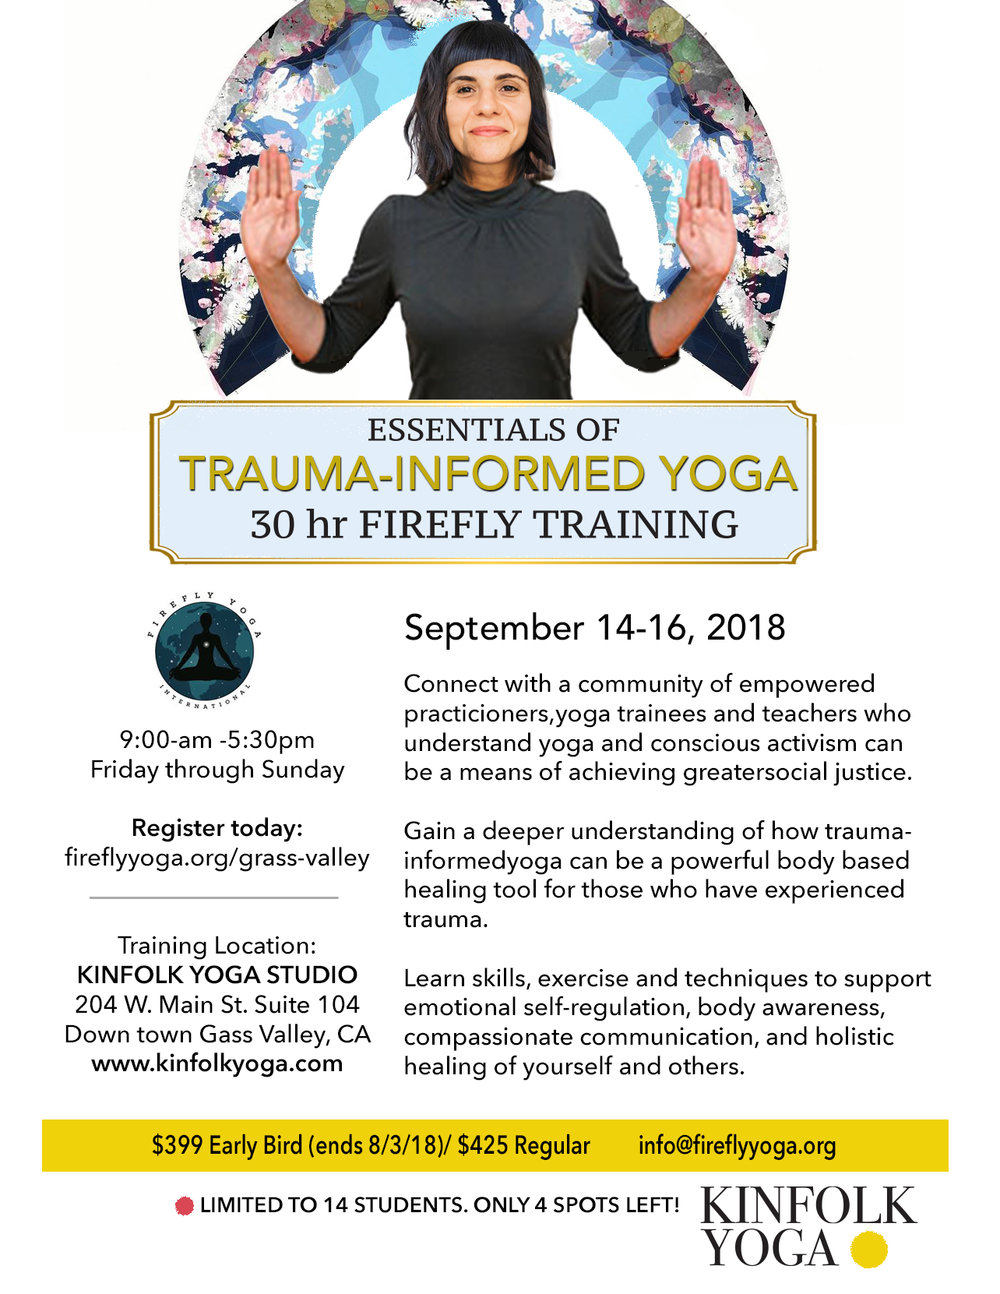 Firefly Yoga Kinfolk Yoga Trauma Informed Yoga